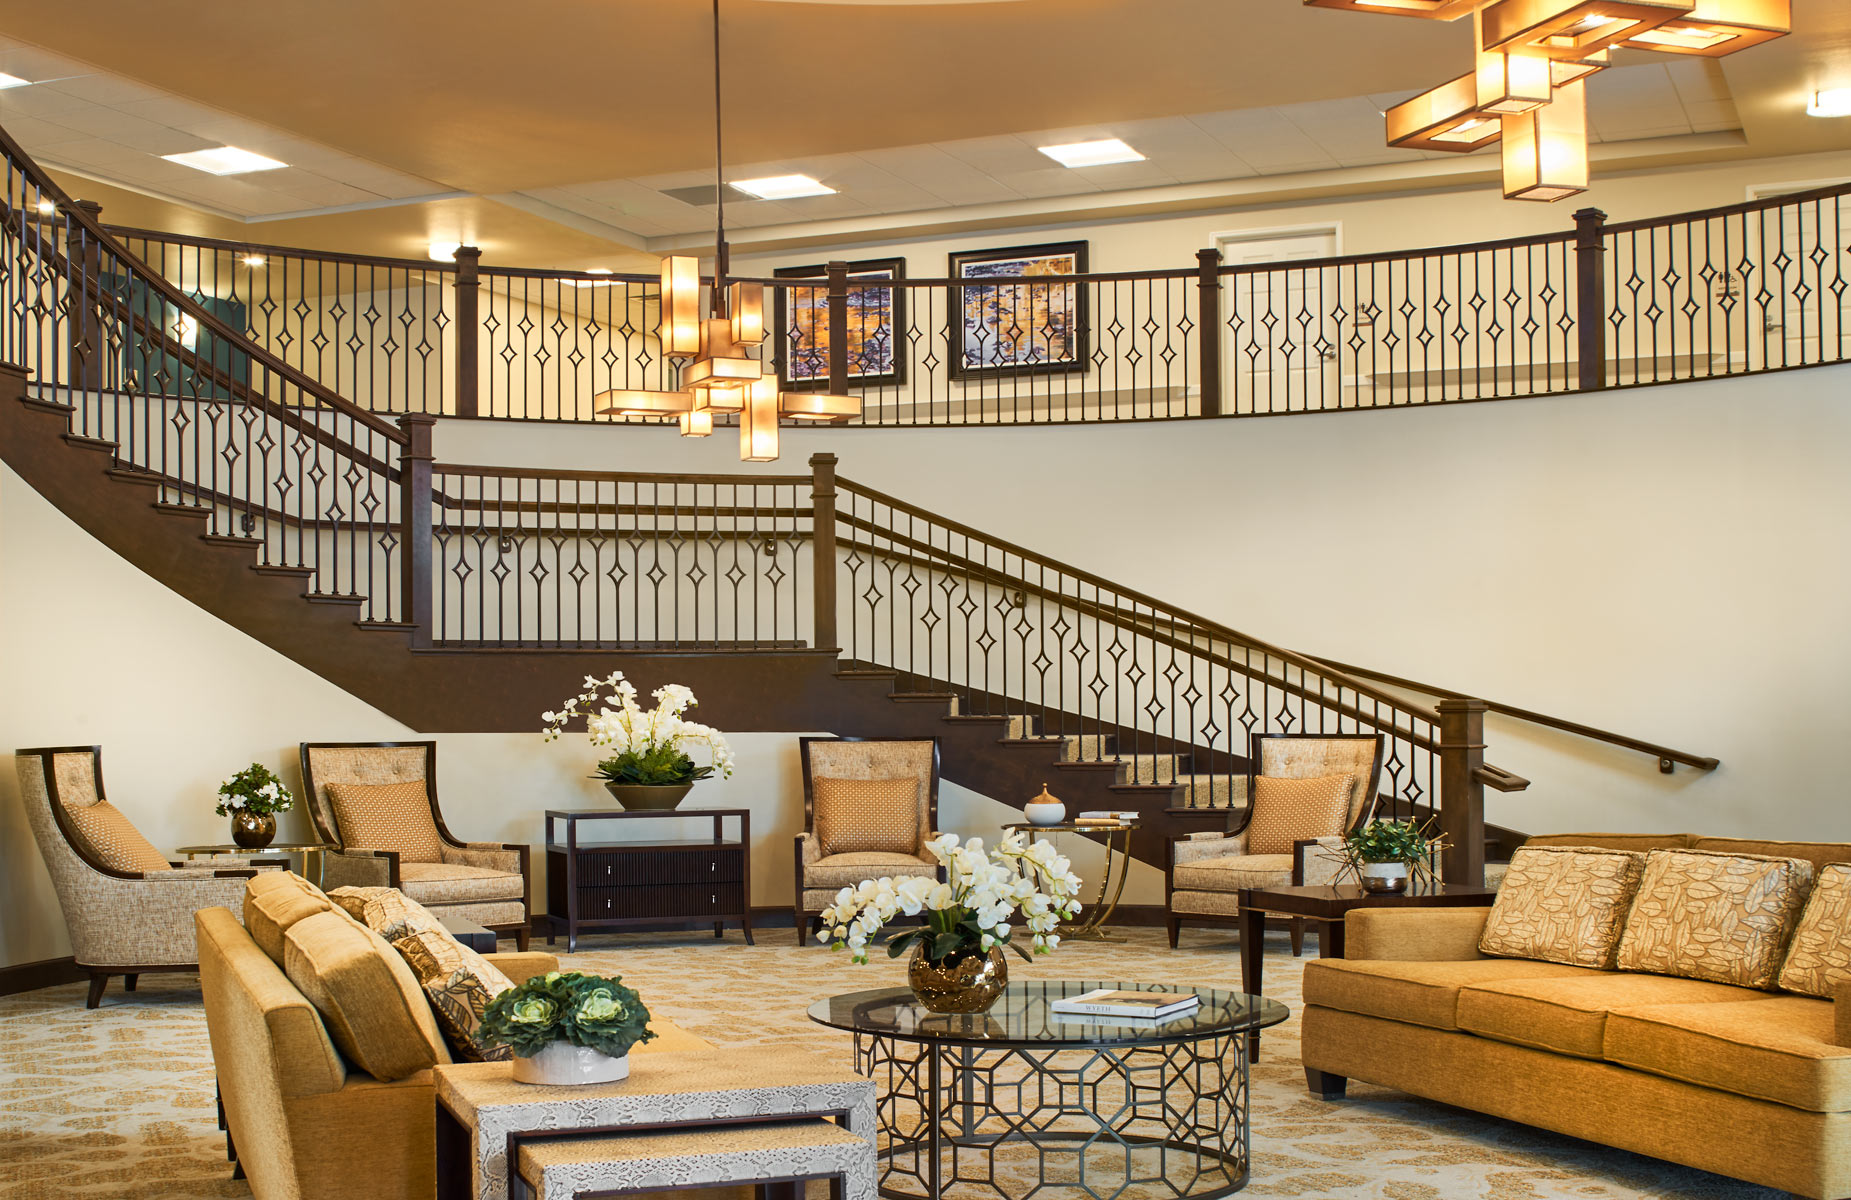 LJID-Ralston-Creek-6-29-16-Grand-Lobby-16X9-Crop-Web